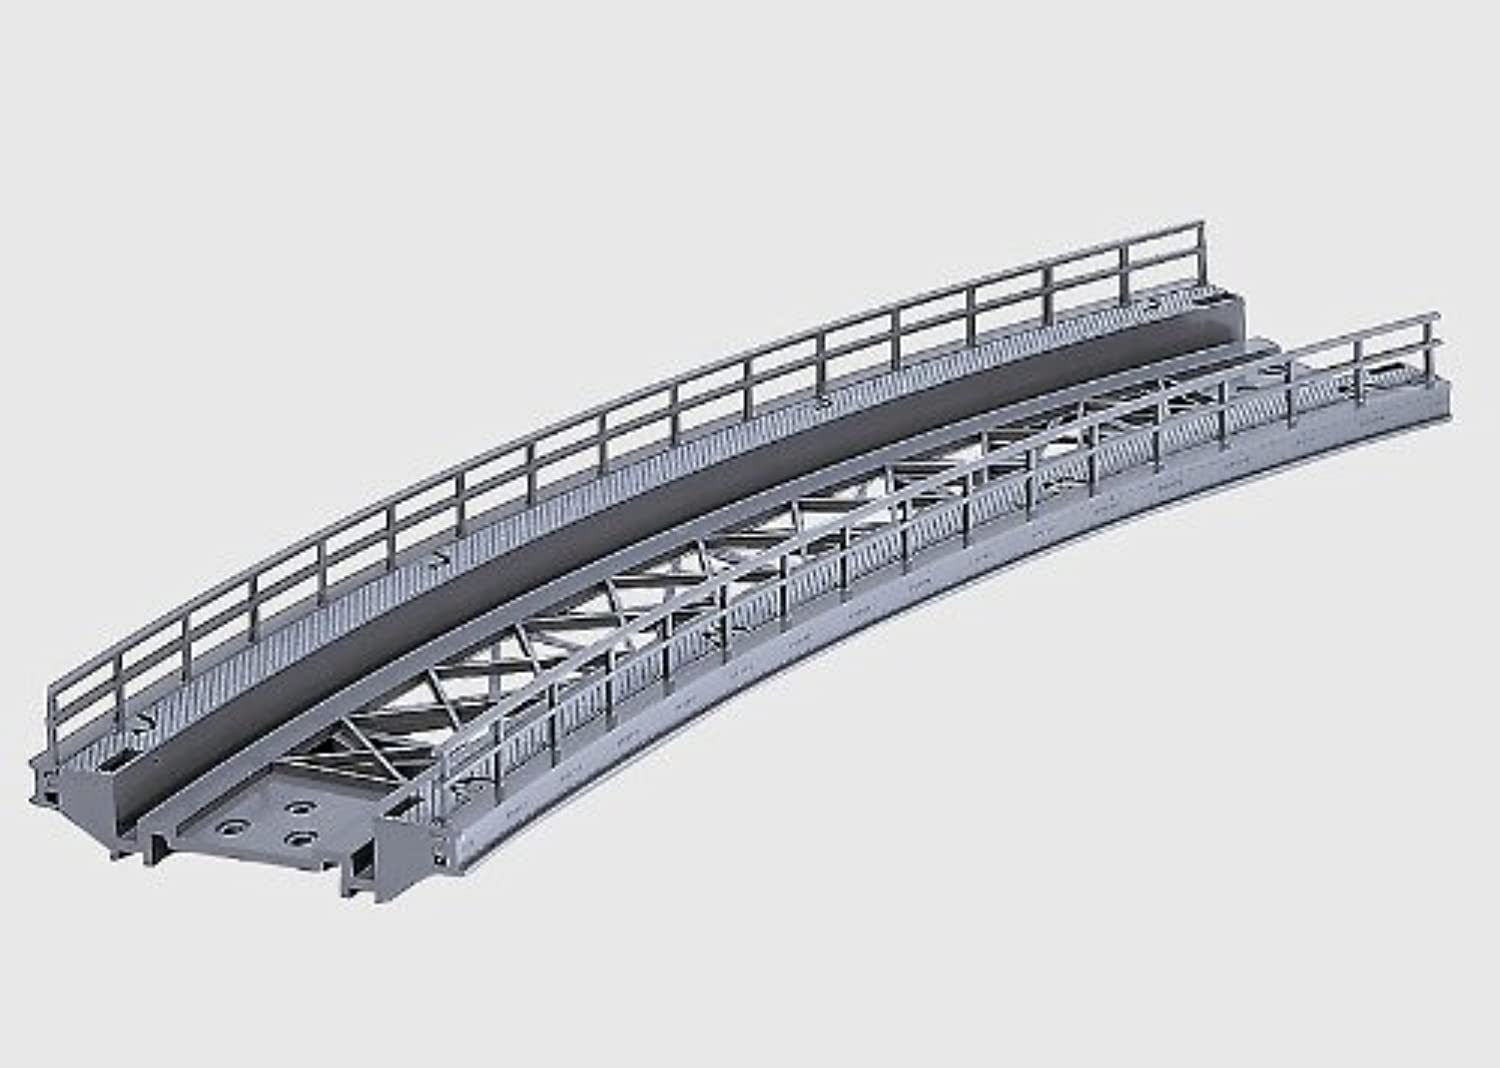 mas preferencial Marklin 7569 Curved Ramp Radius 424.6mm K Track (1) (1) (1) by Marklin  venta de ofertas